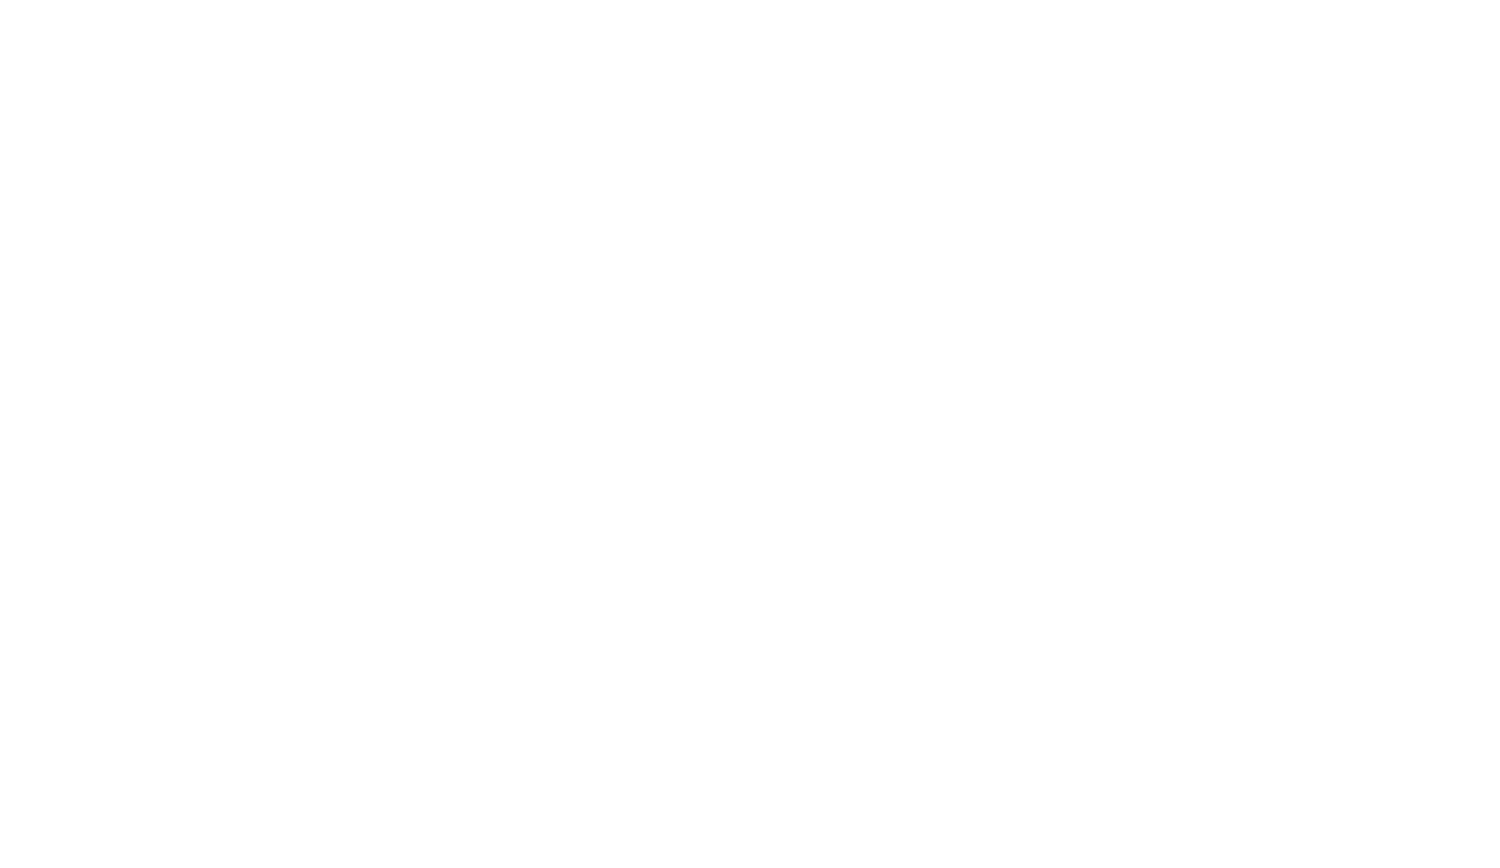 Tony Chevy